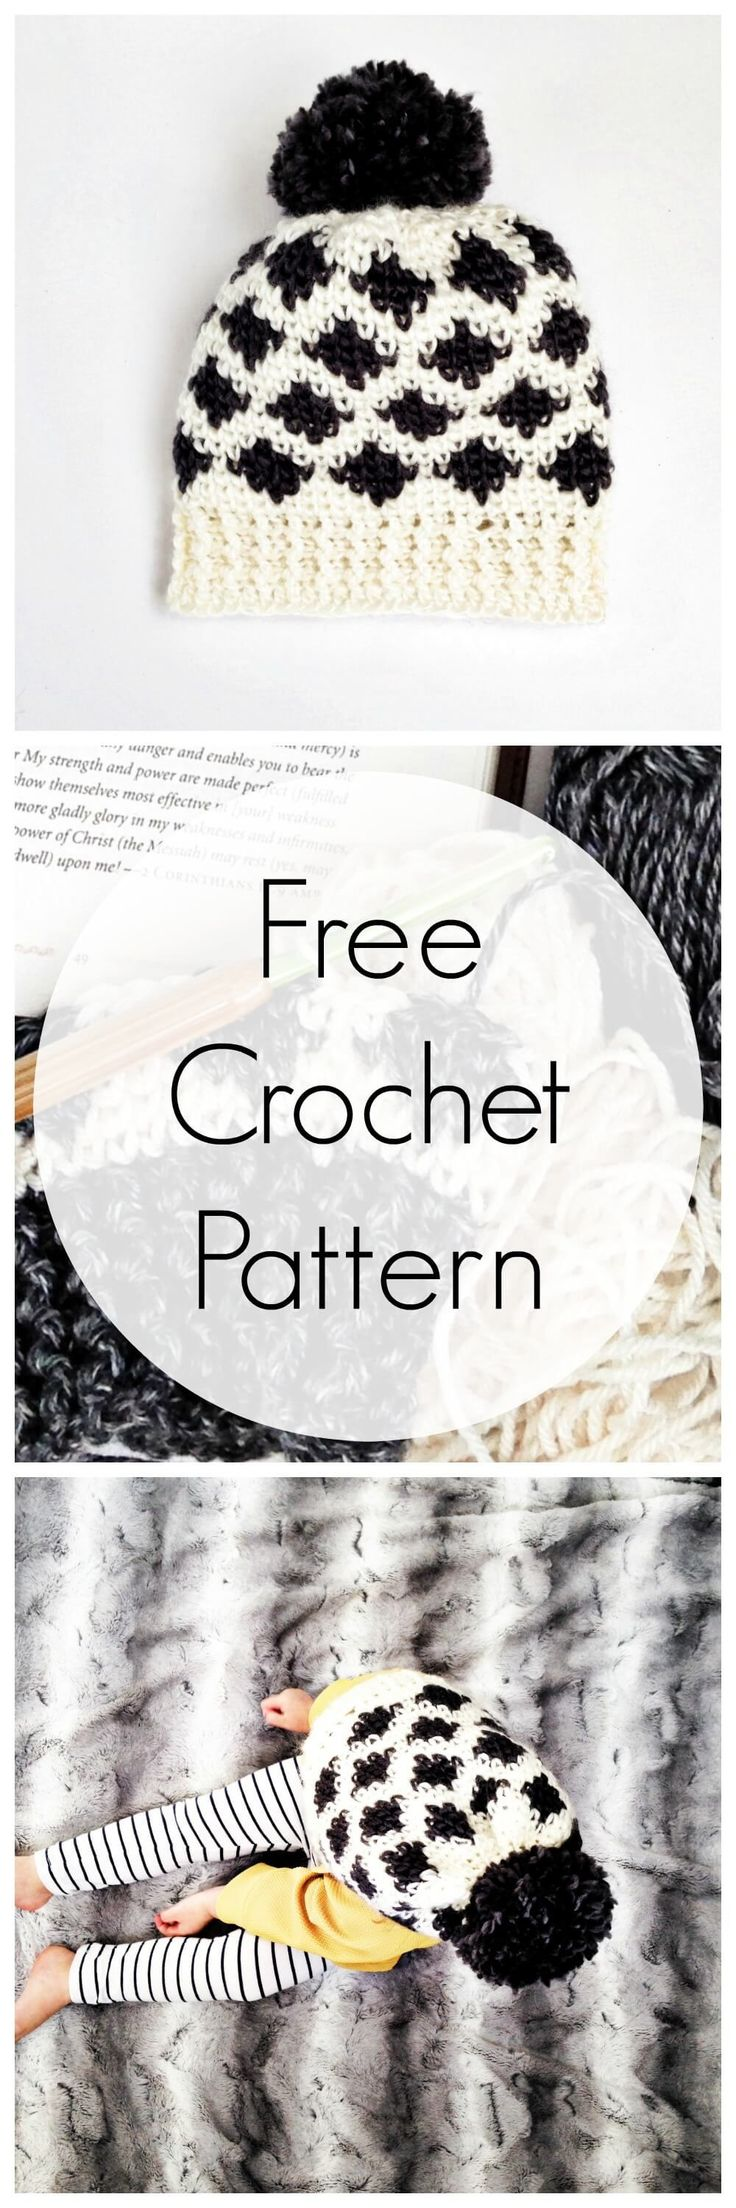 Crochet hat pattern. Make this modern crochet hat in toddler or adult size. Video tutorials for special stitches & a tip to make your own color charts for crochet.